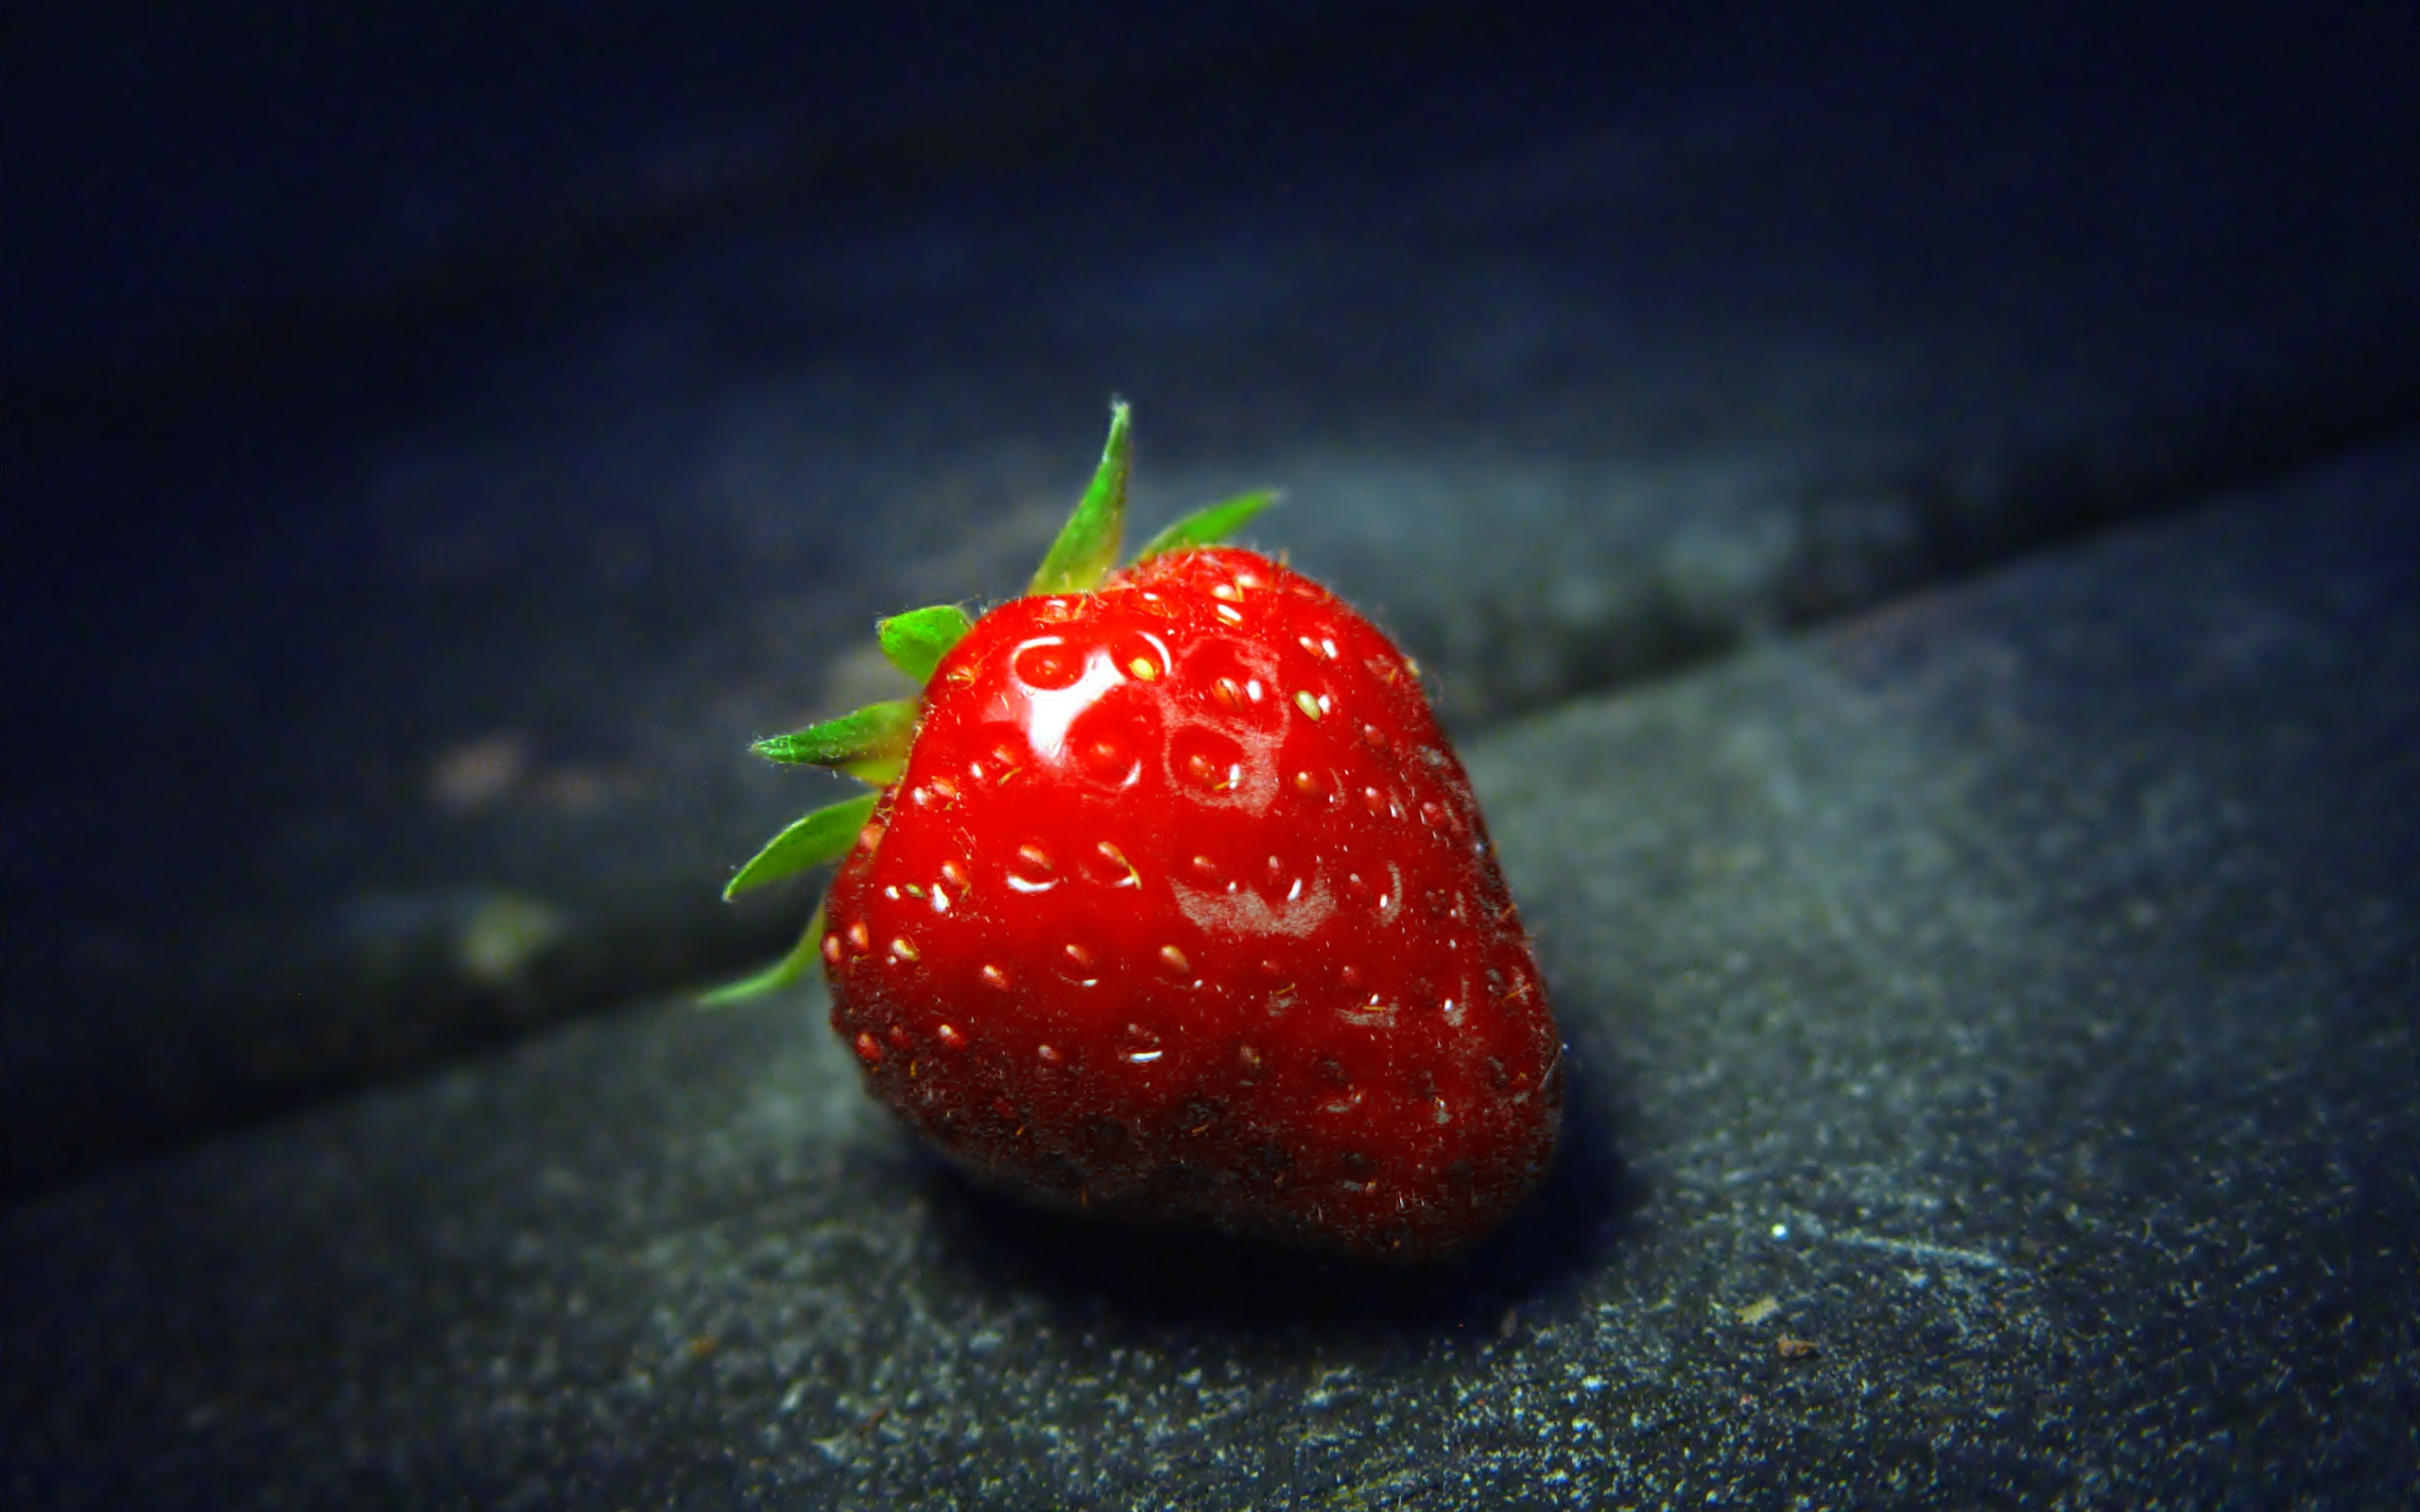 48072 download wallpaper Plants, Strawberry, Berries screensavers and pictures for free